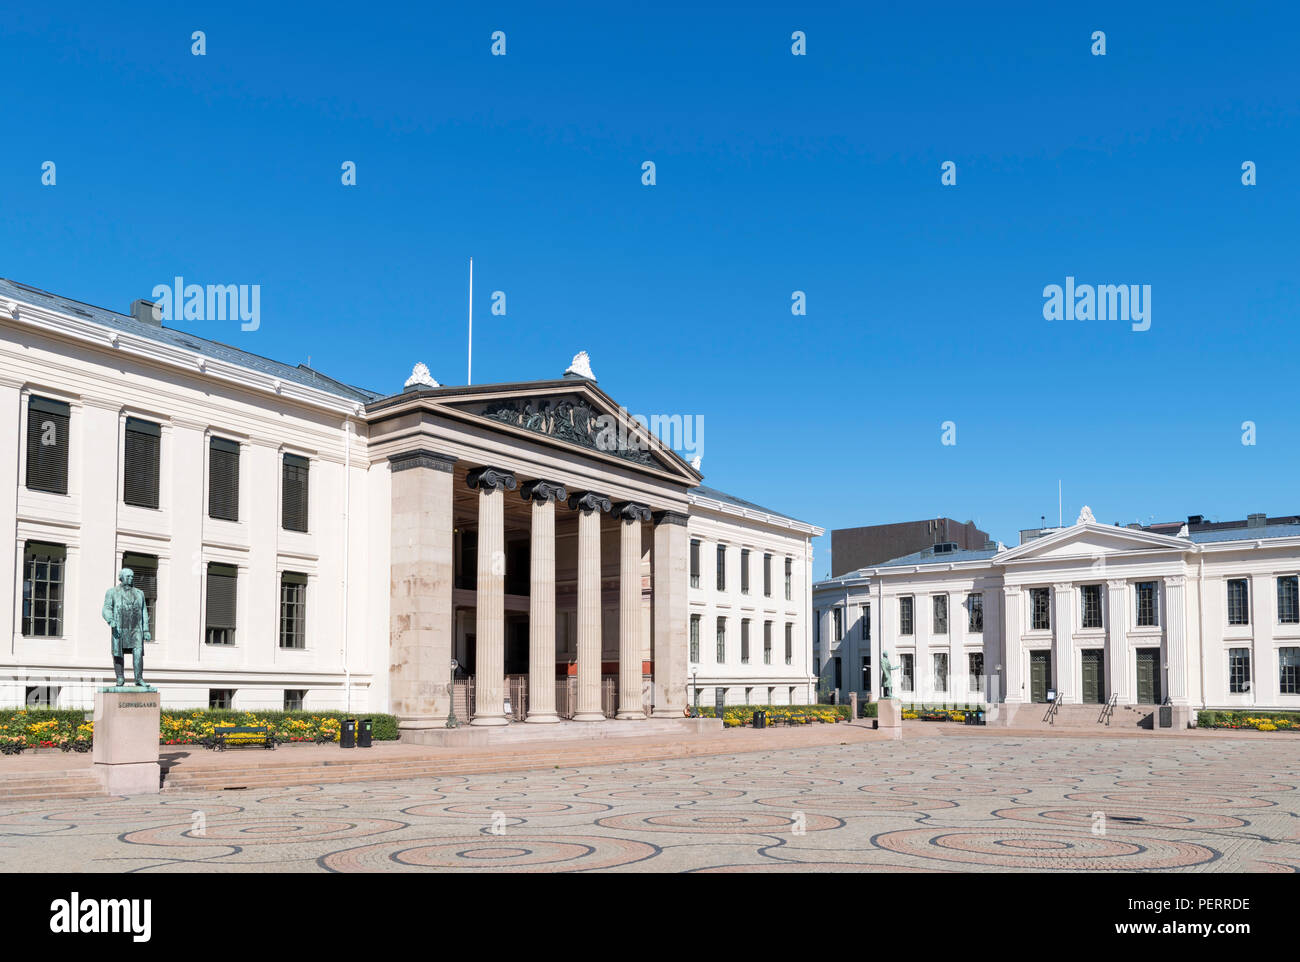 Central Campus of the University of Oslo, now housing the Faculty of Law, Universitetsplassen, Karl Johans gate, Oslo, Norway - Stock Image